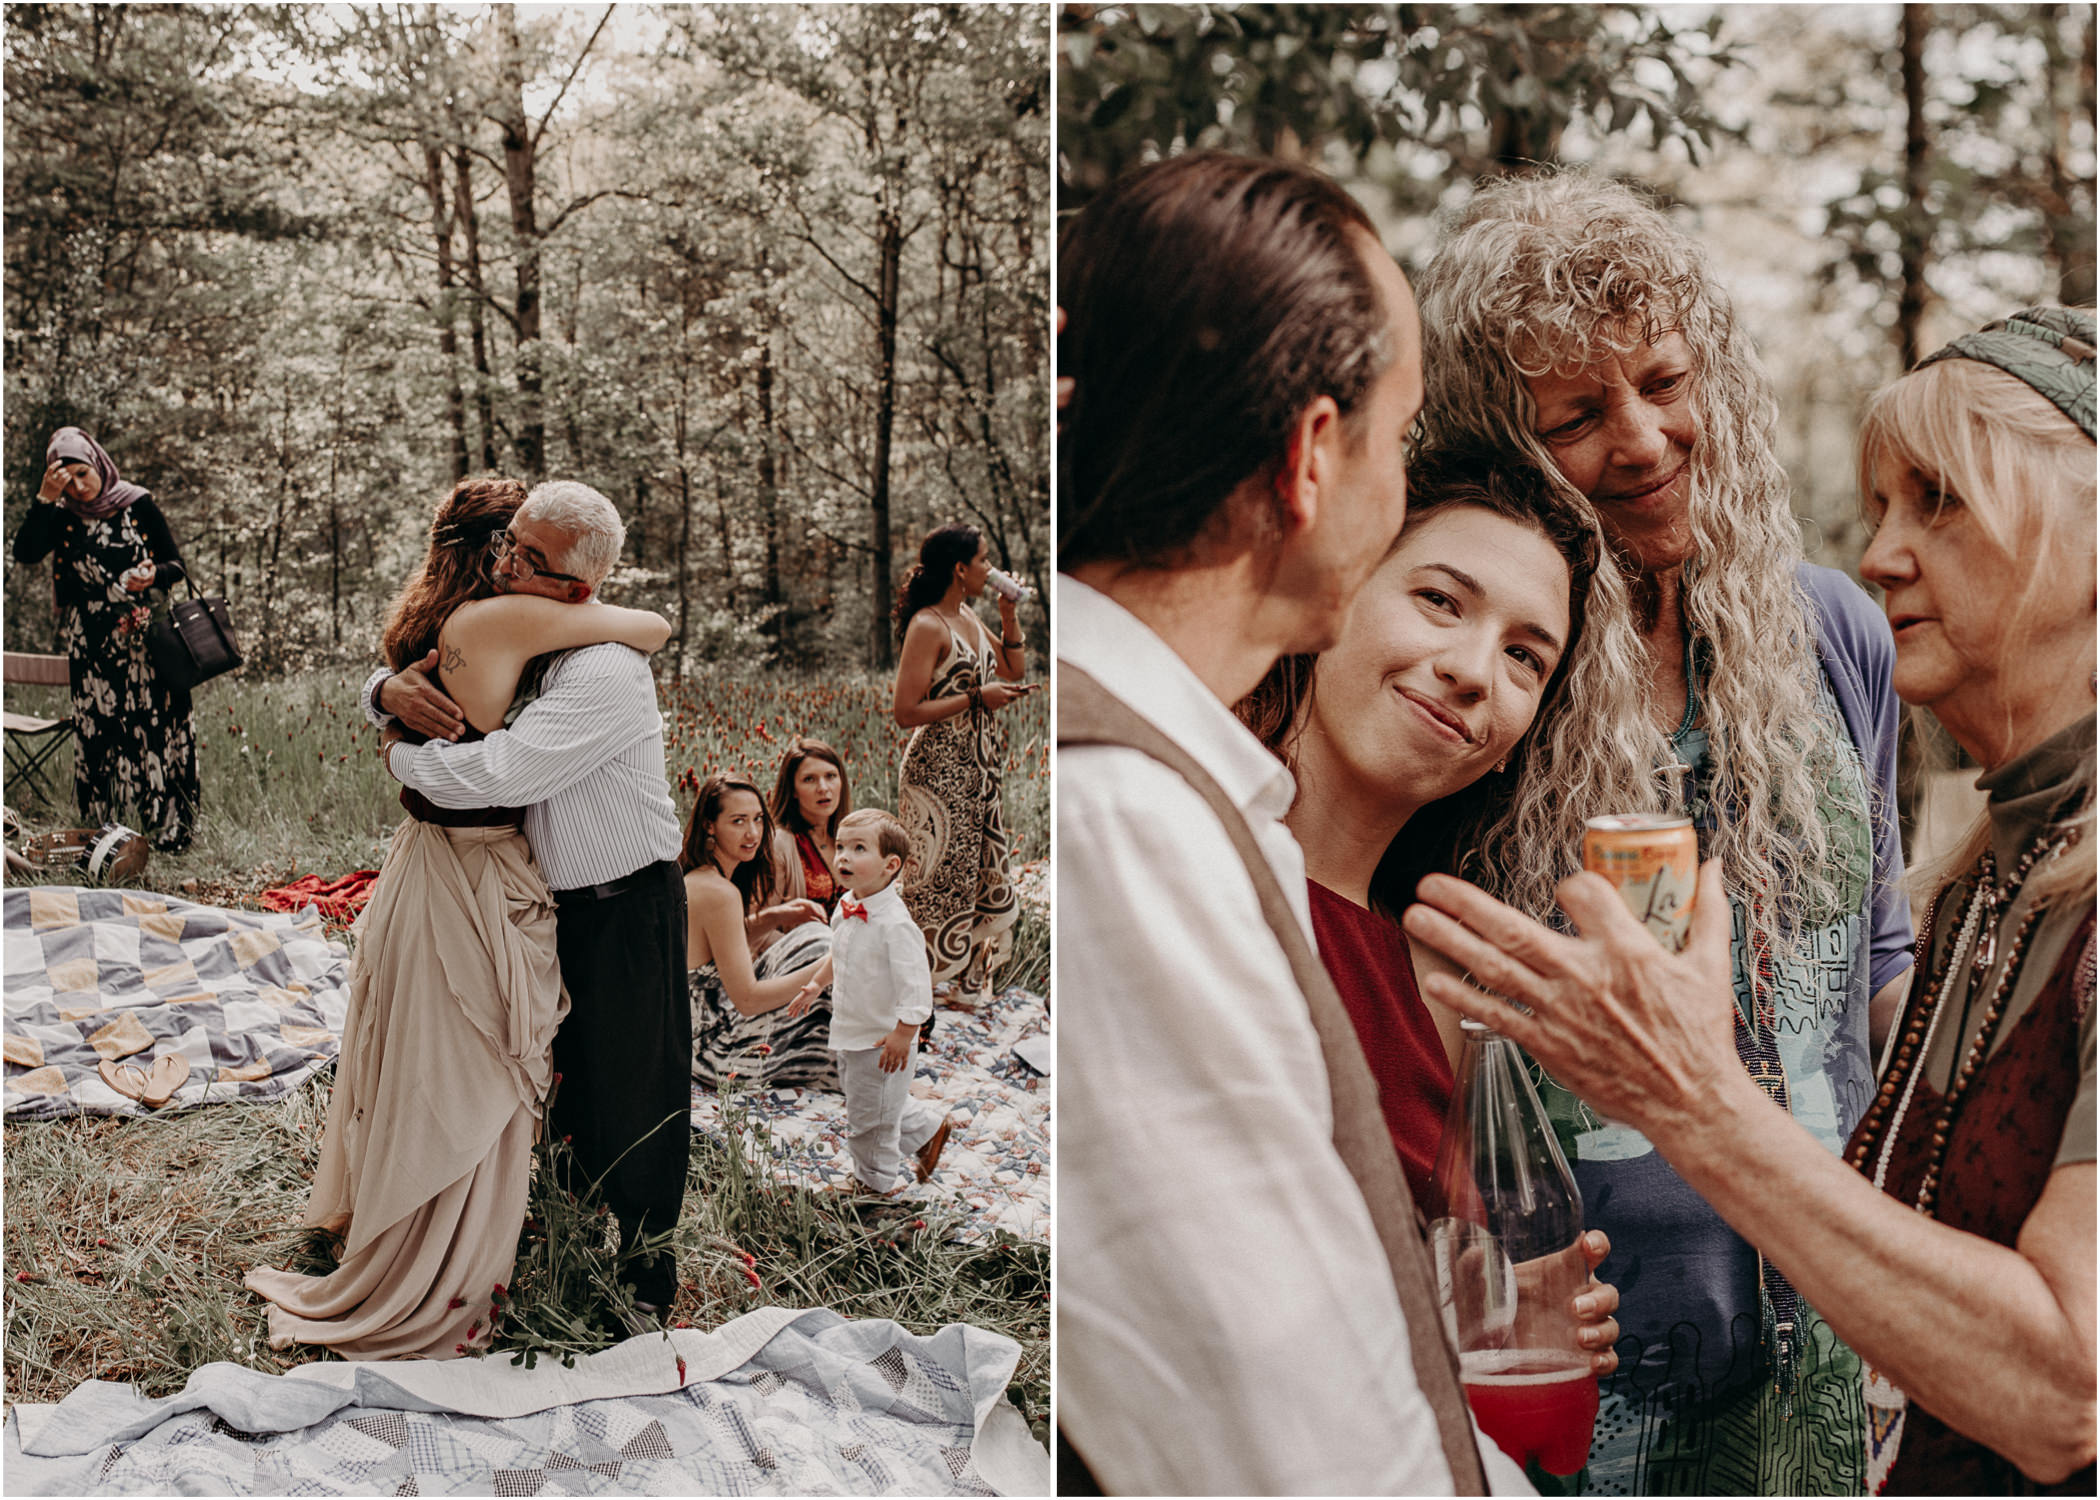 68- Forest wedding boho enchanched fairytale wedding atlanta - ga , intimate, elopement, nature, greens, good vibes. Aline Marin Photography .jpg